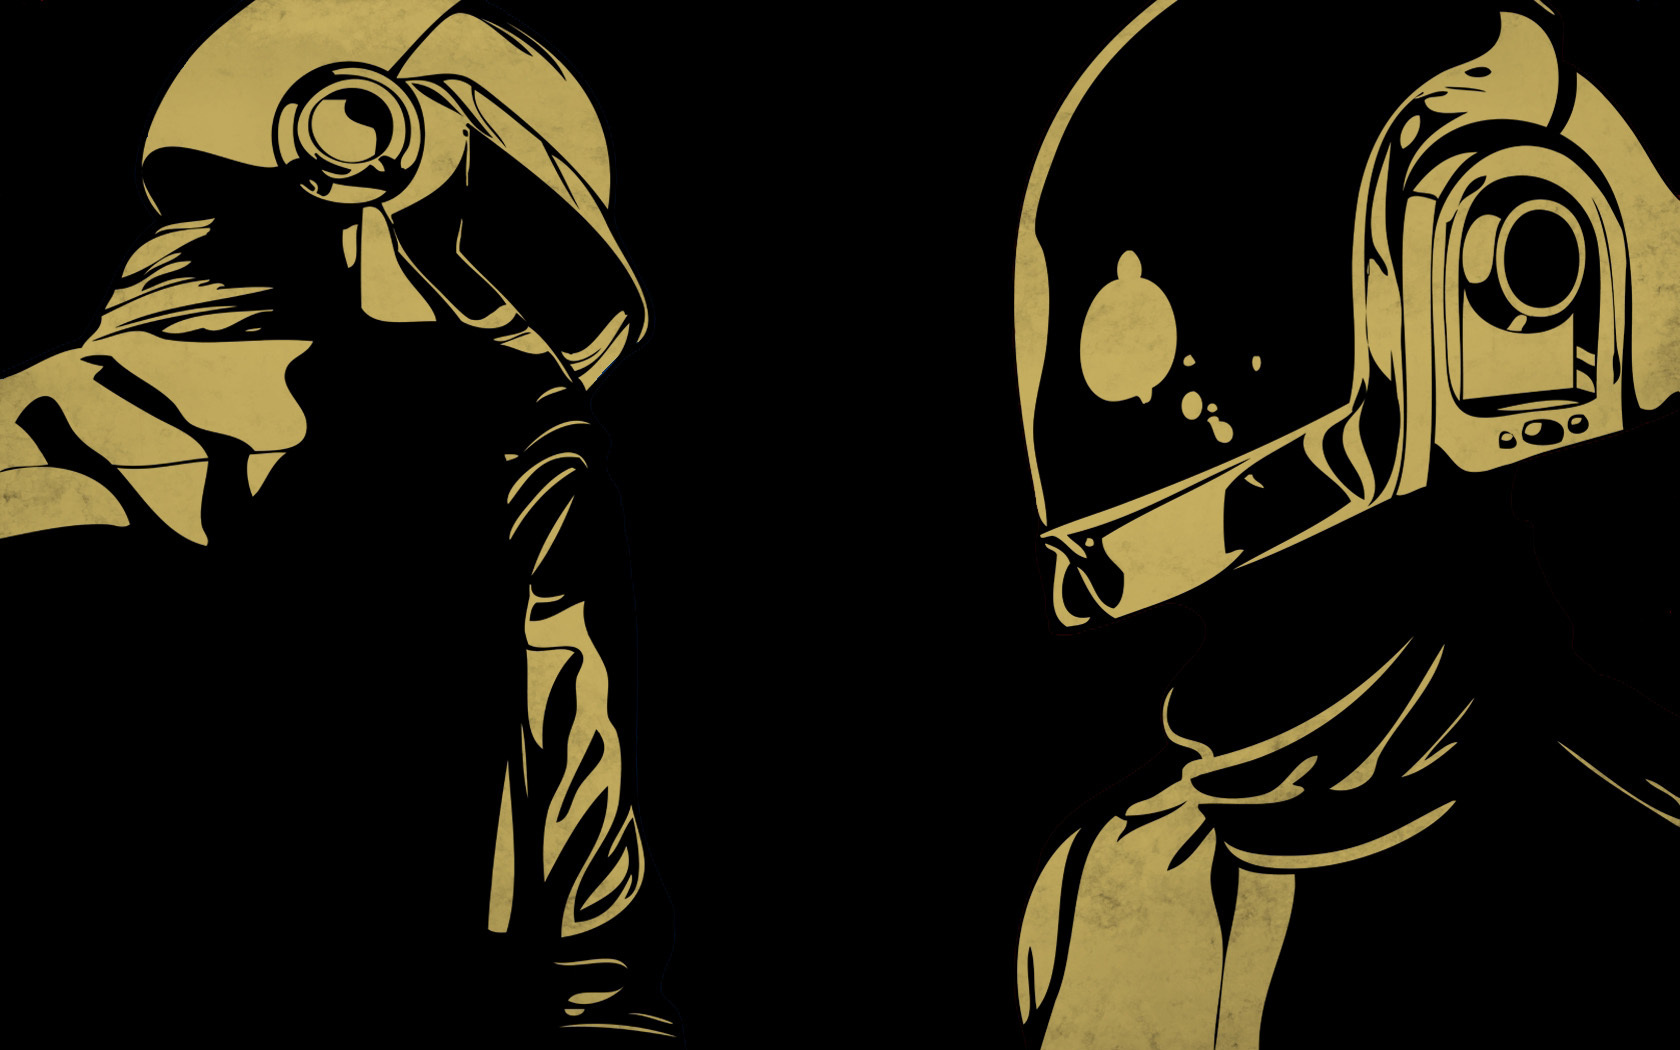 daft punk daft punk wallpaper hd